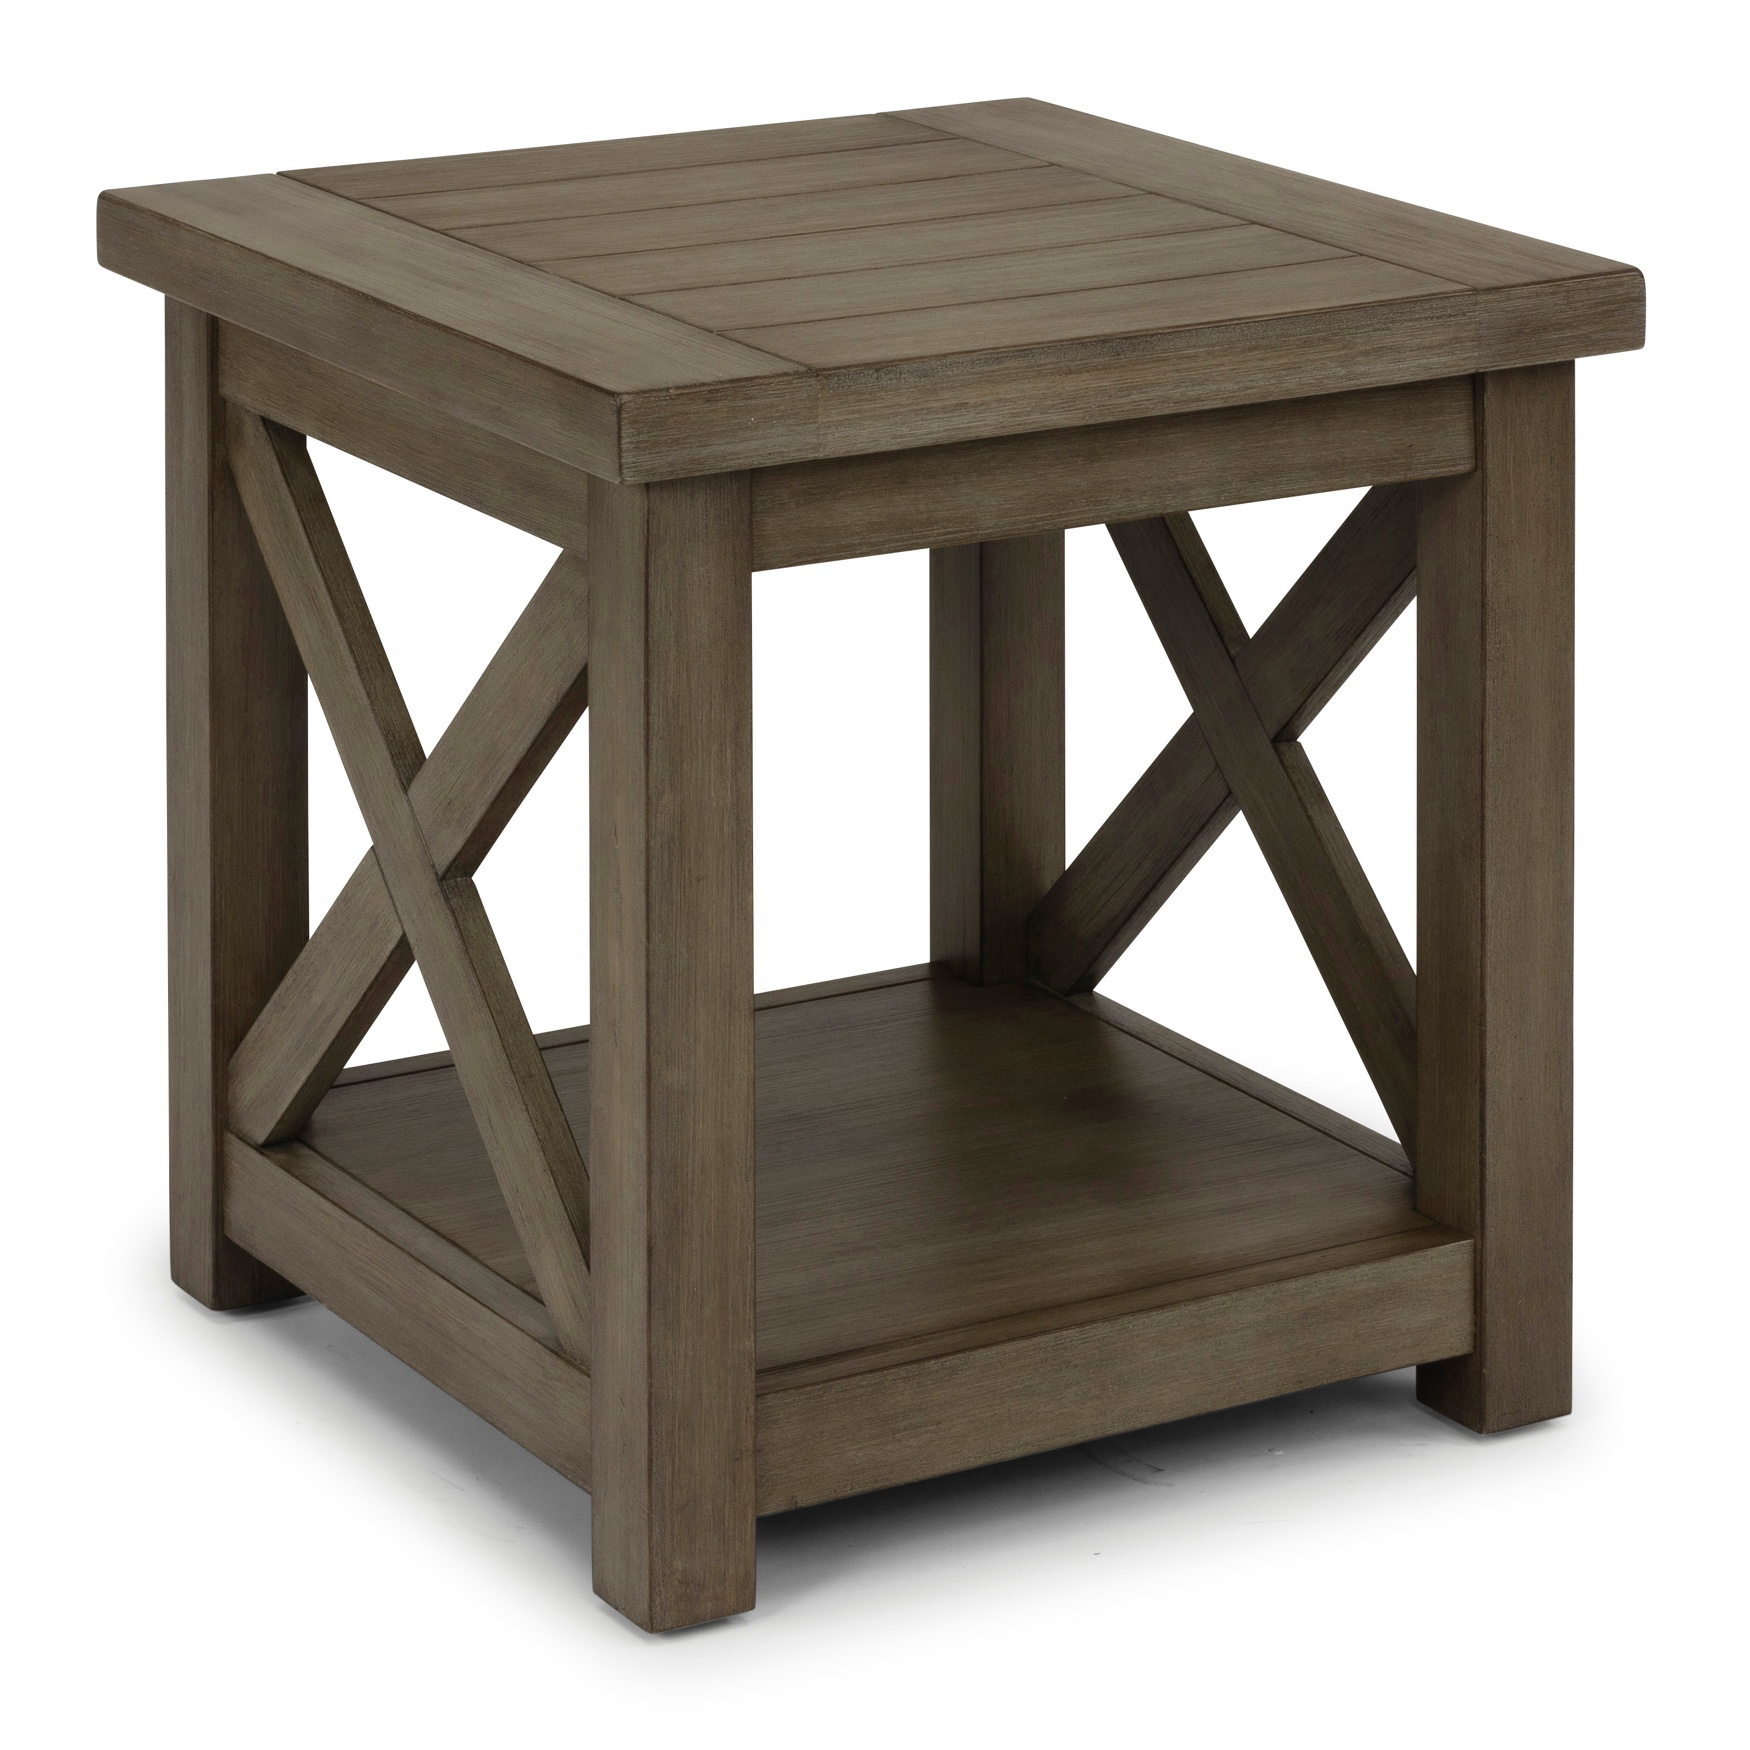 Mountain Lodge End Table by Home Styles, MULTI GRAY